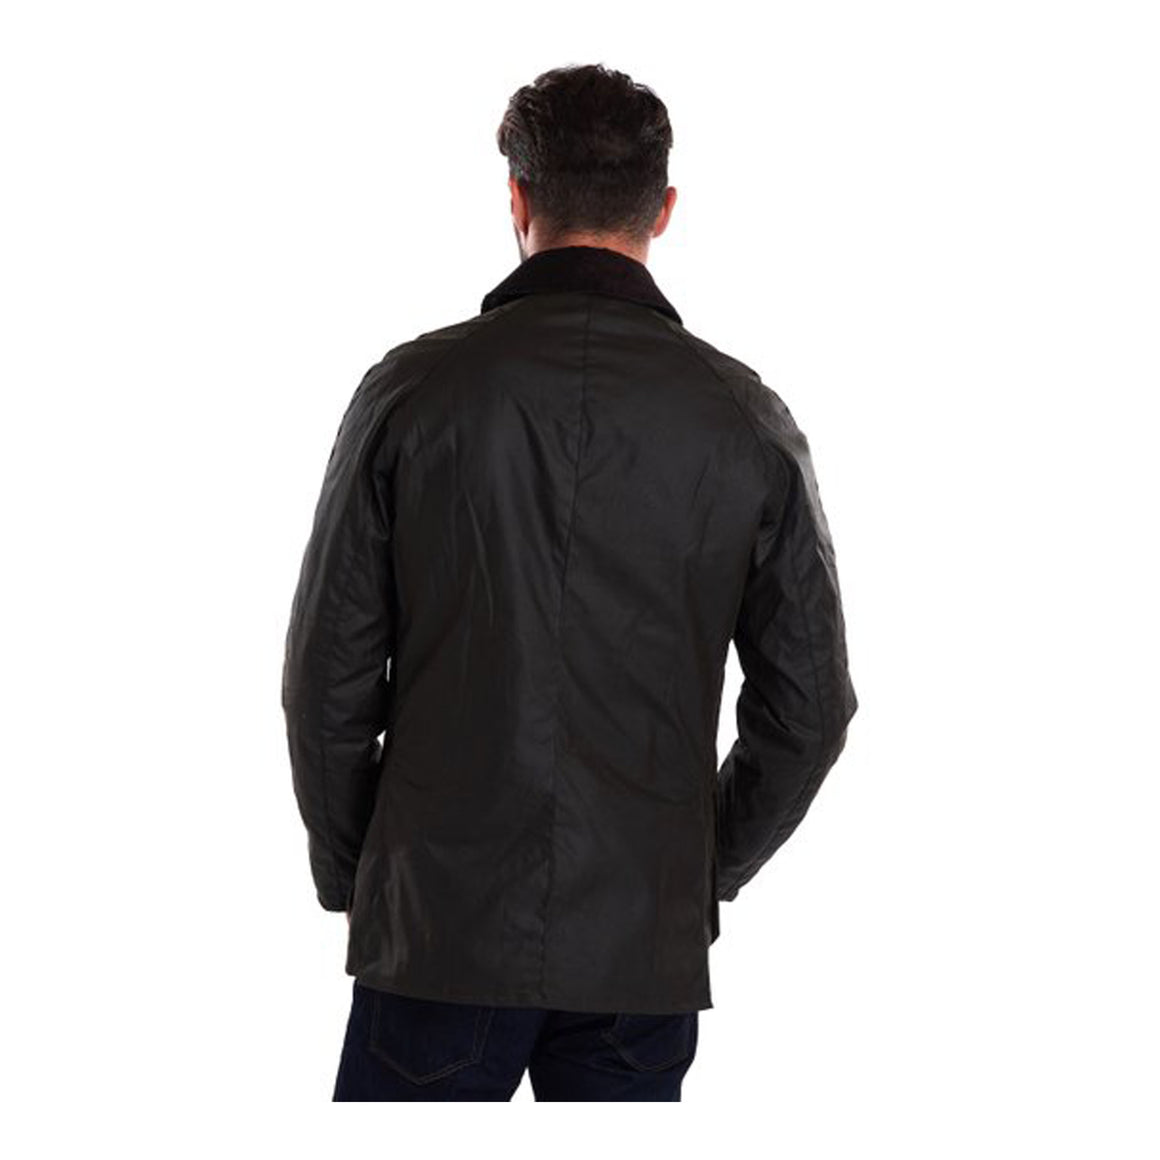 Ashby Wax Jacket for Men in Olive